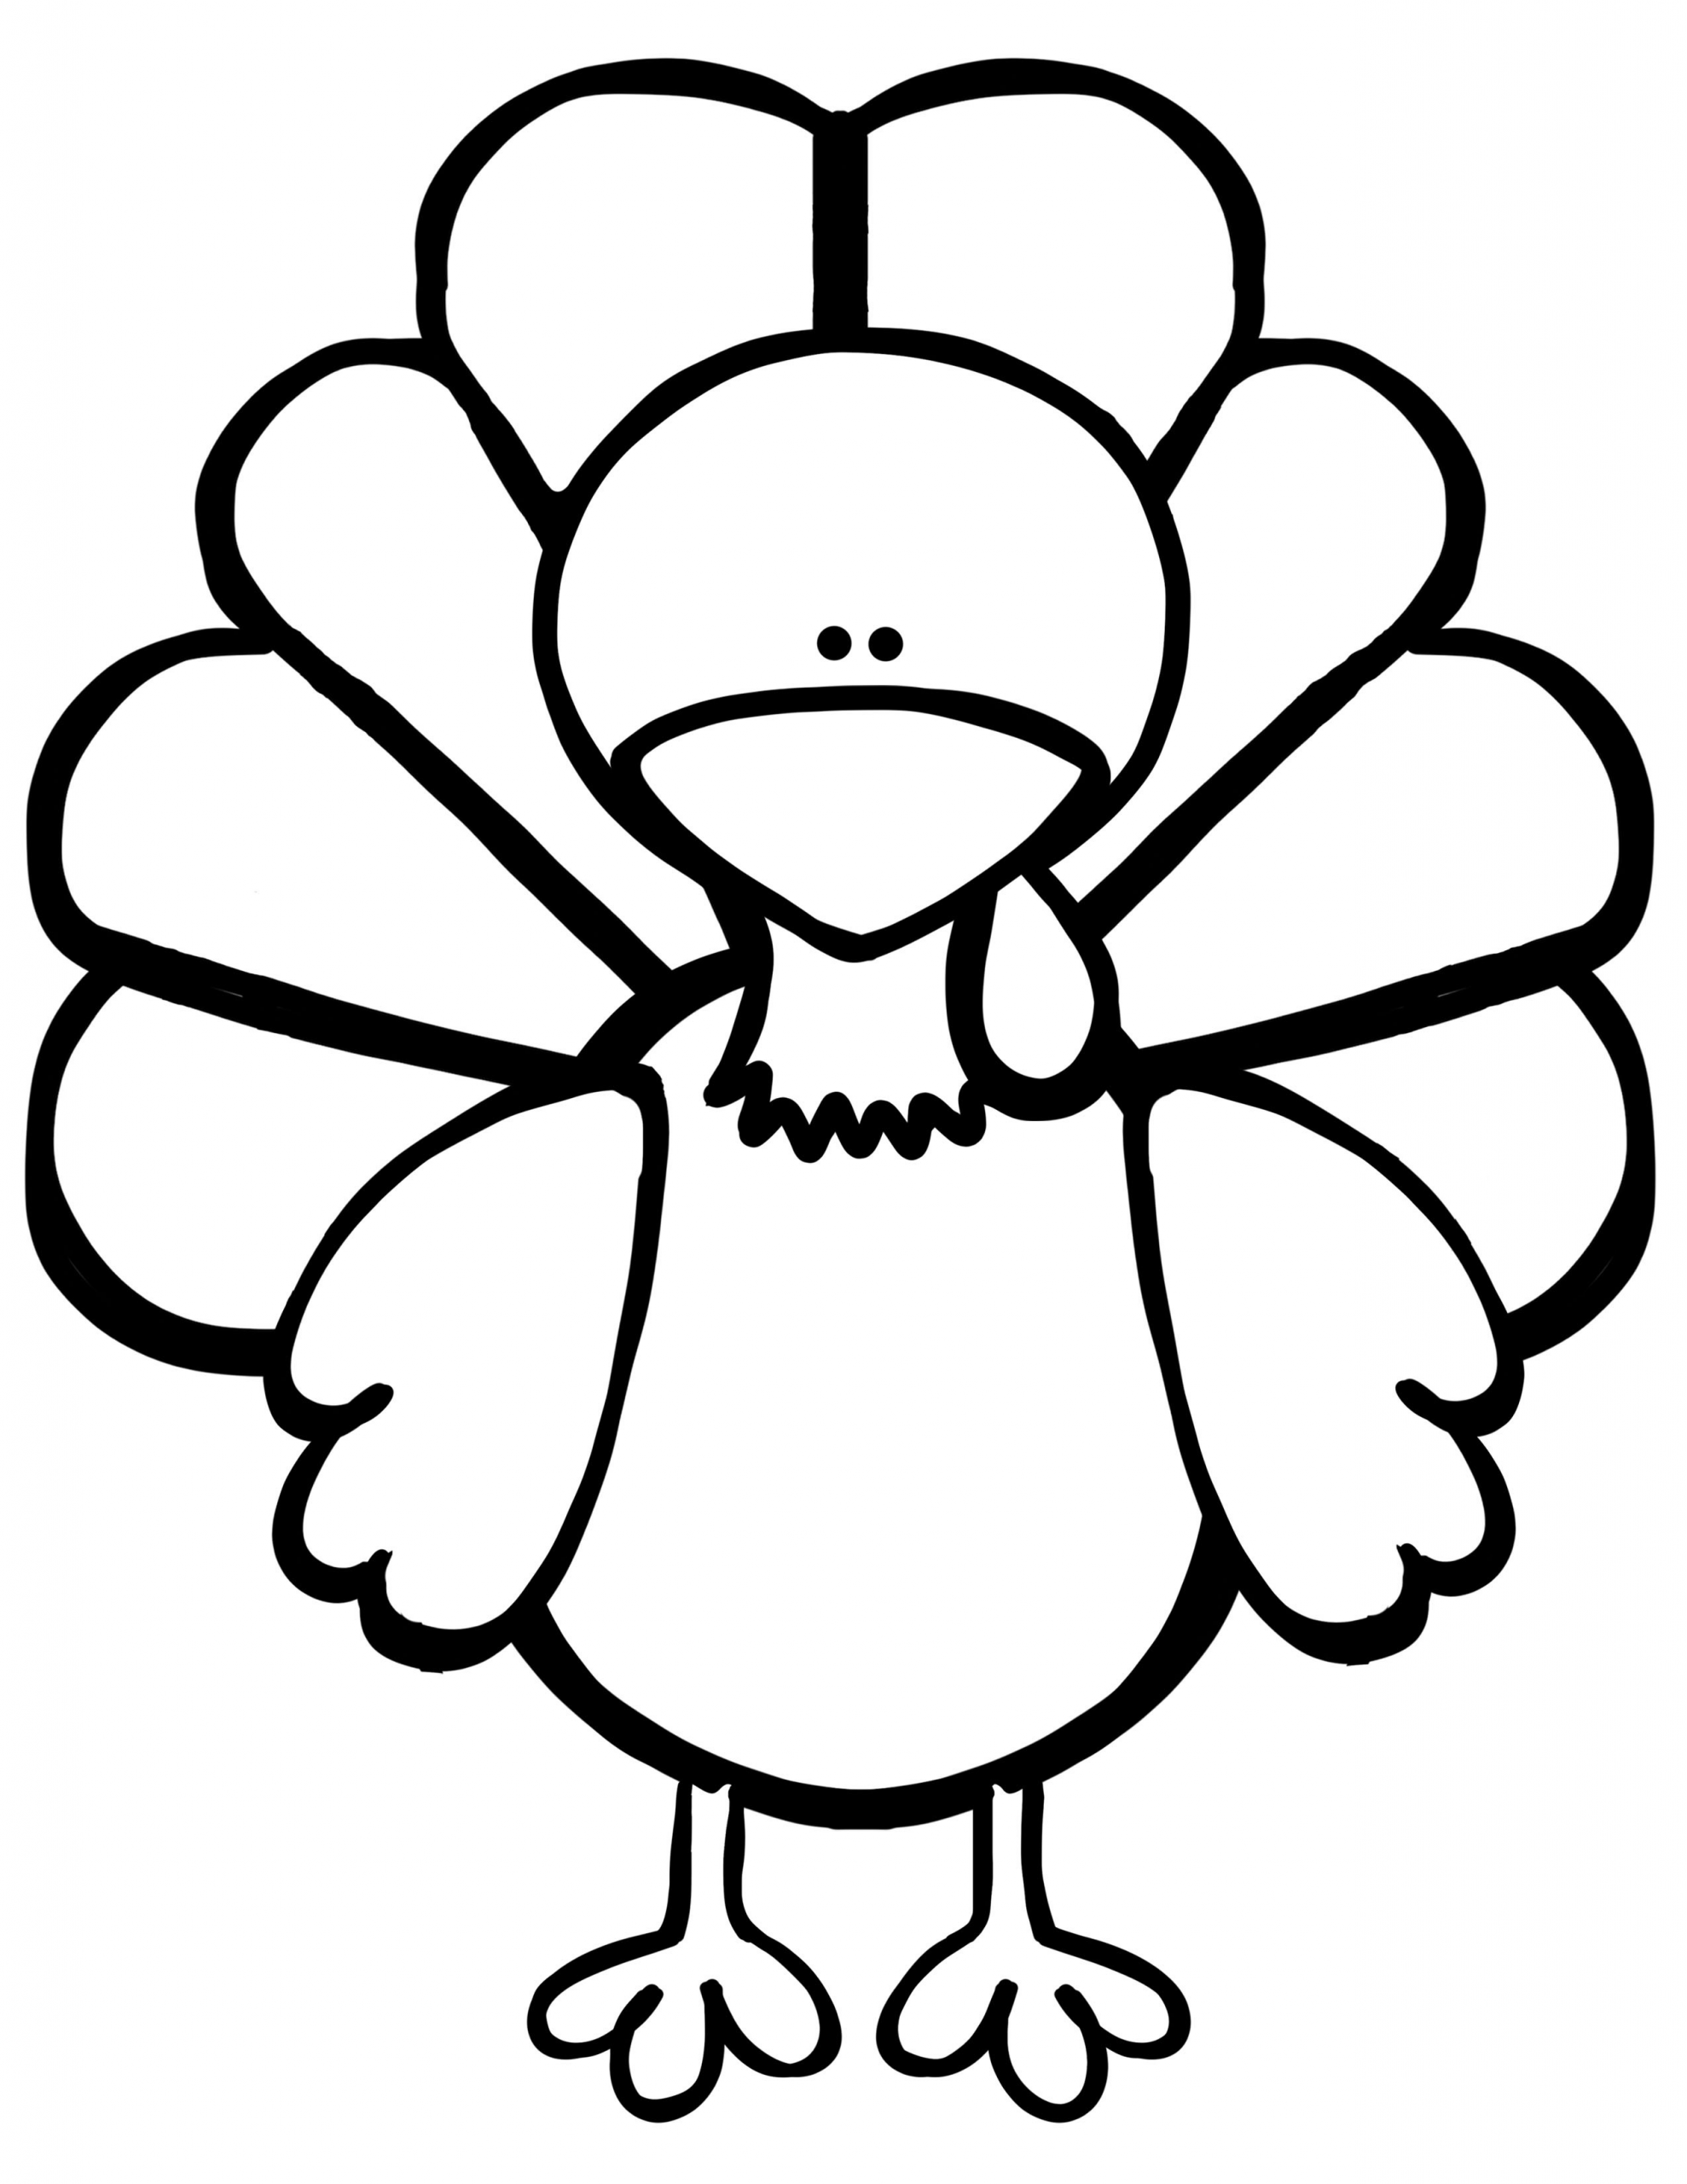 Tom The Turkey Coloring Page Youngandtae Com Turkey Disguise Turkey Disguise Project Turkey Art